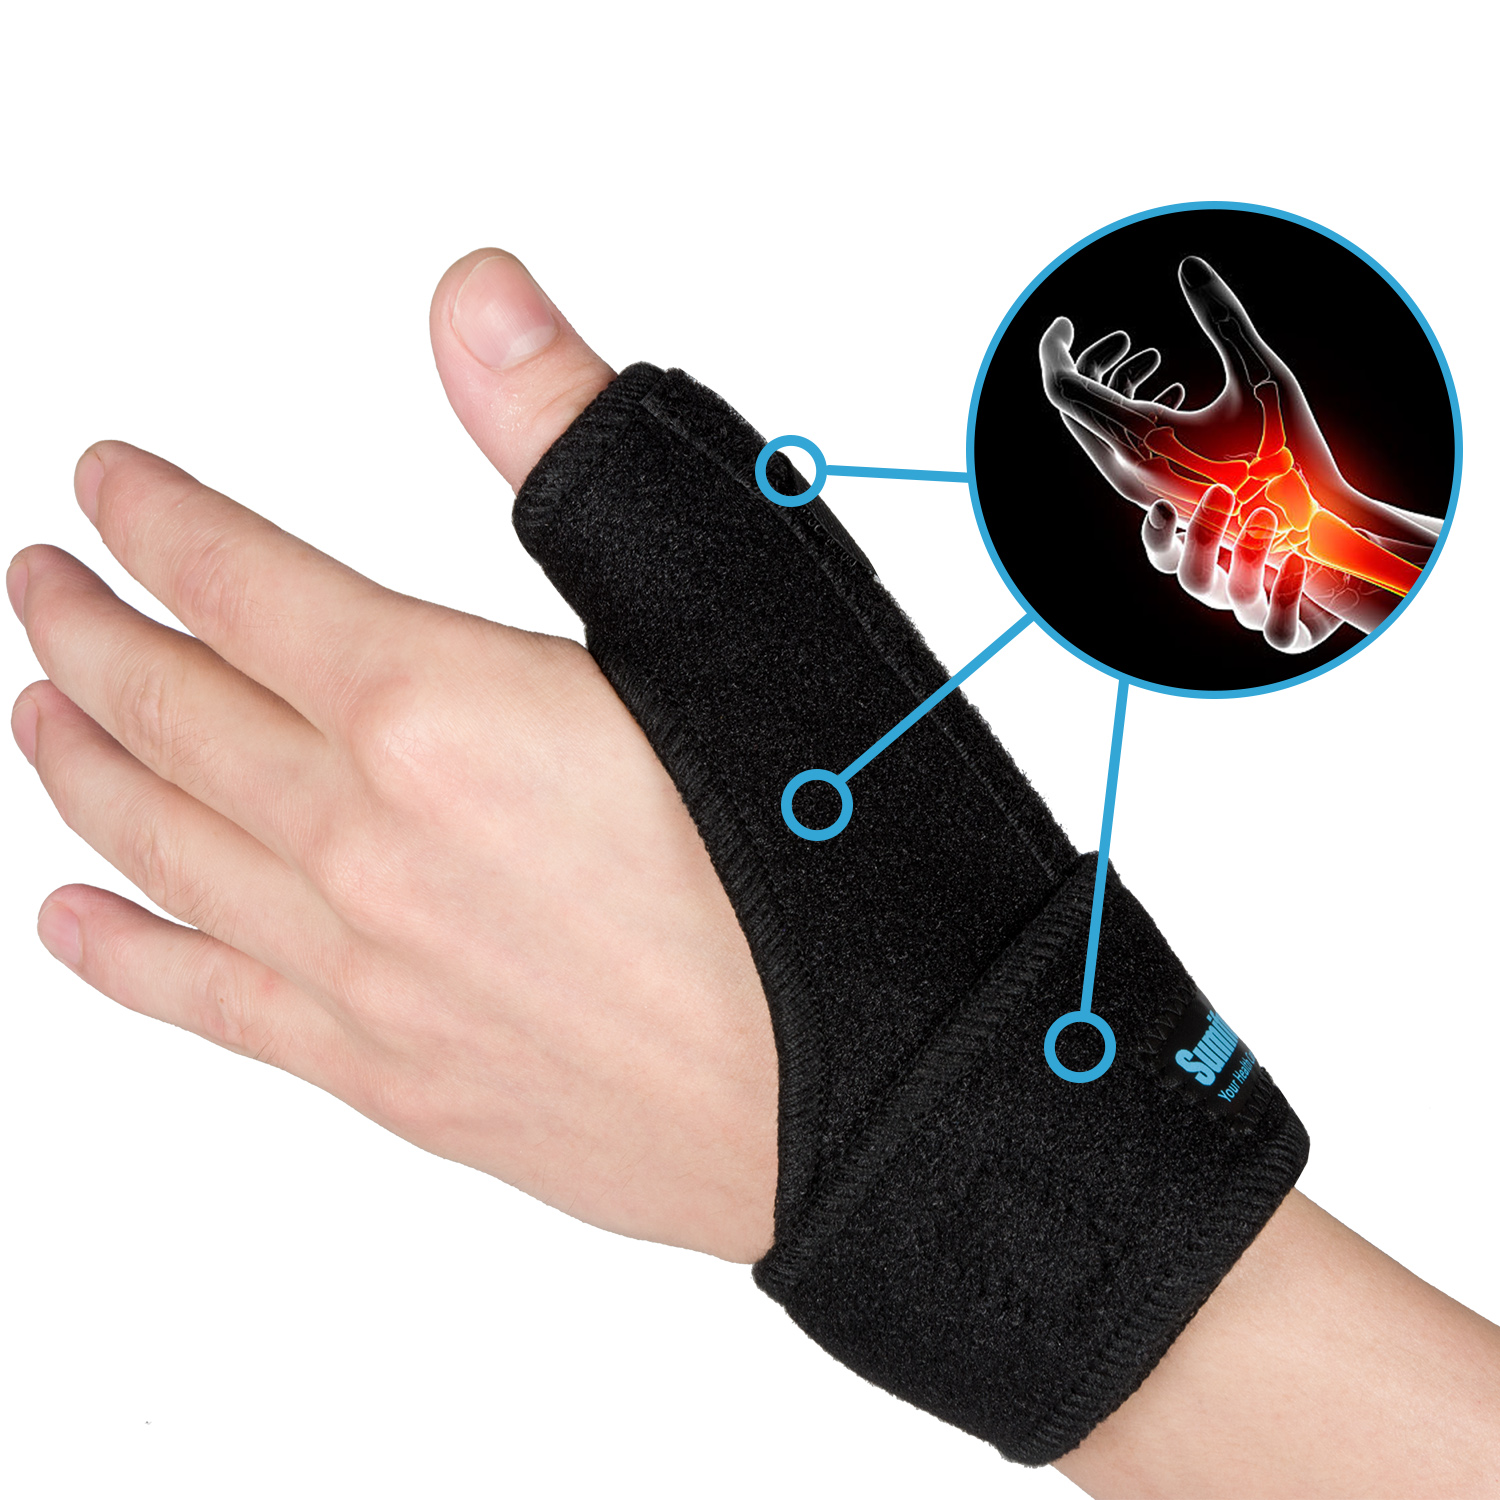 1pcs Hand Protecor Thumb Spica Wrist Brace Splint Support For Arthritis Tendonitis Carpal Tunnel Pain Relief C1572